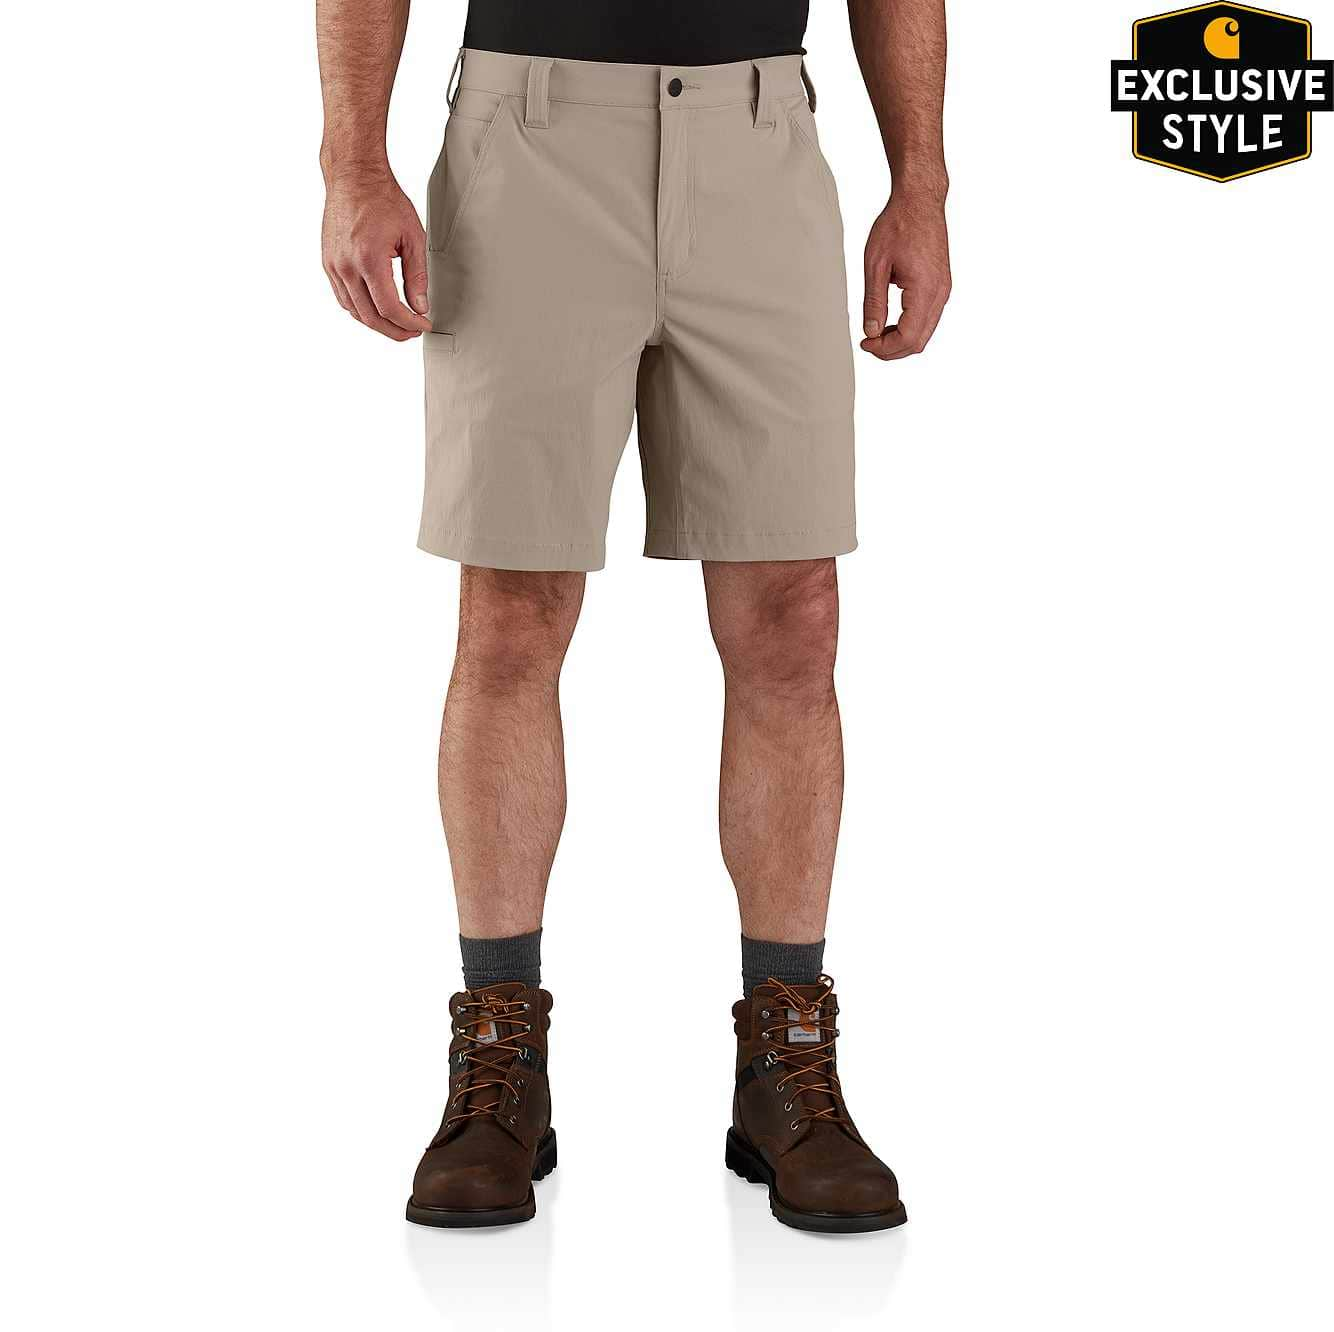 Picture of FORCE® RELAXED FIT NYLON RIPSTOP WORK SHORT in Tan